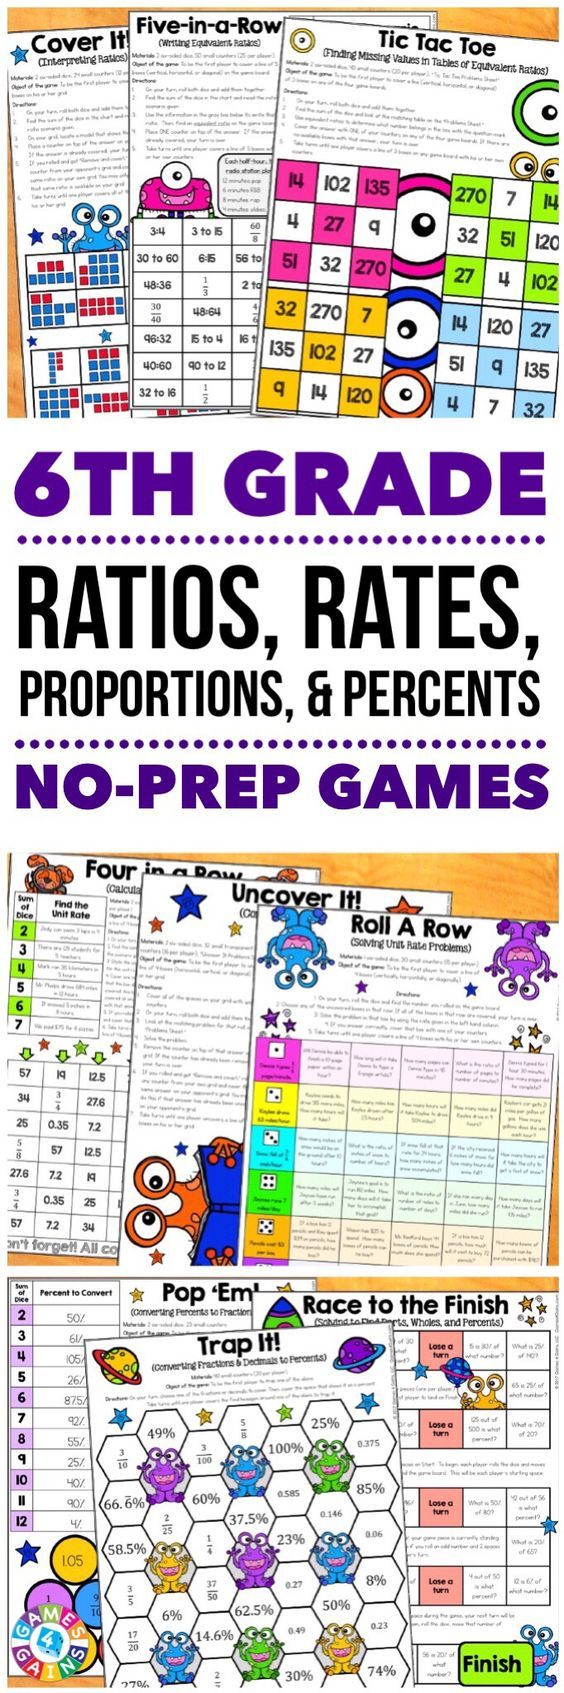 Workbooks ratios 6th grade worksheets : The 25+ best Ratio and proportion calculator ideas on Pinterest ...